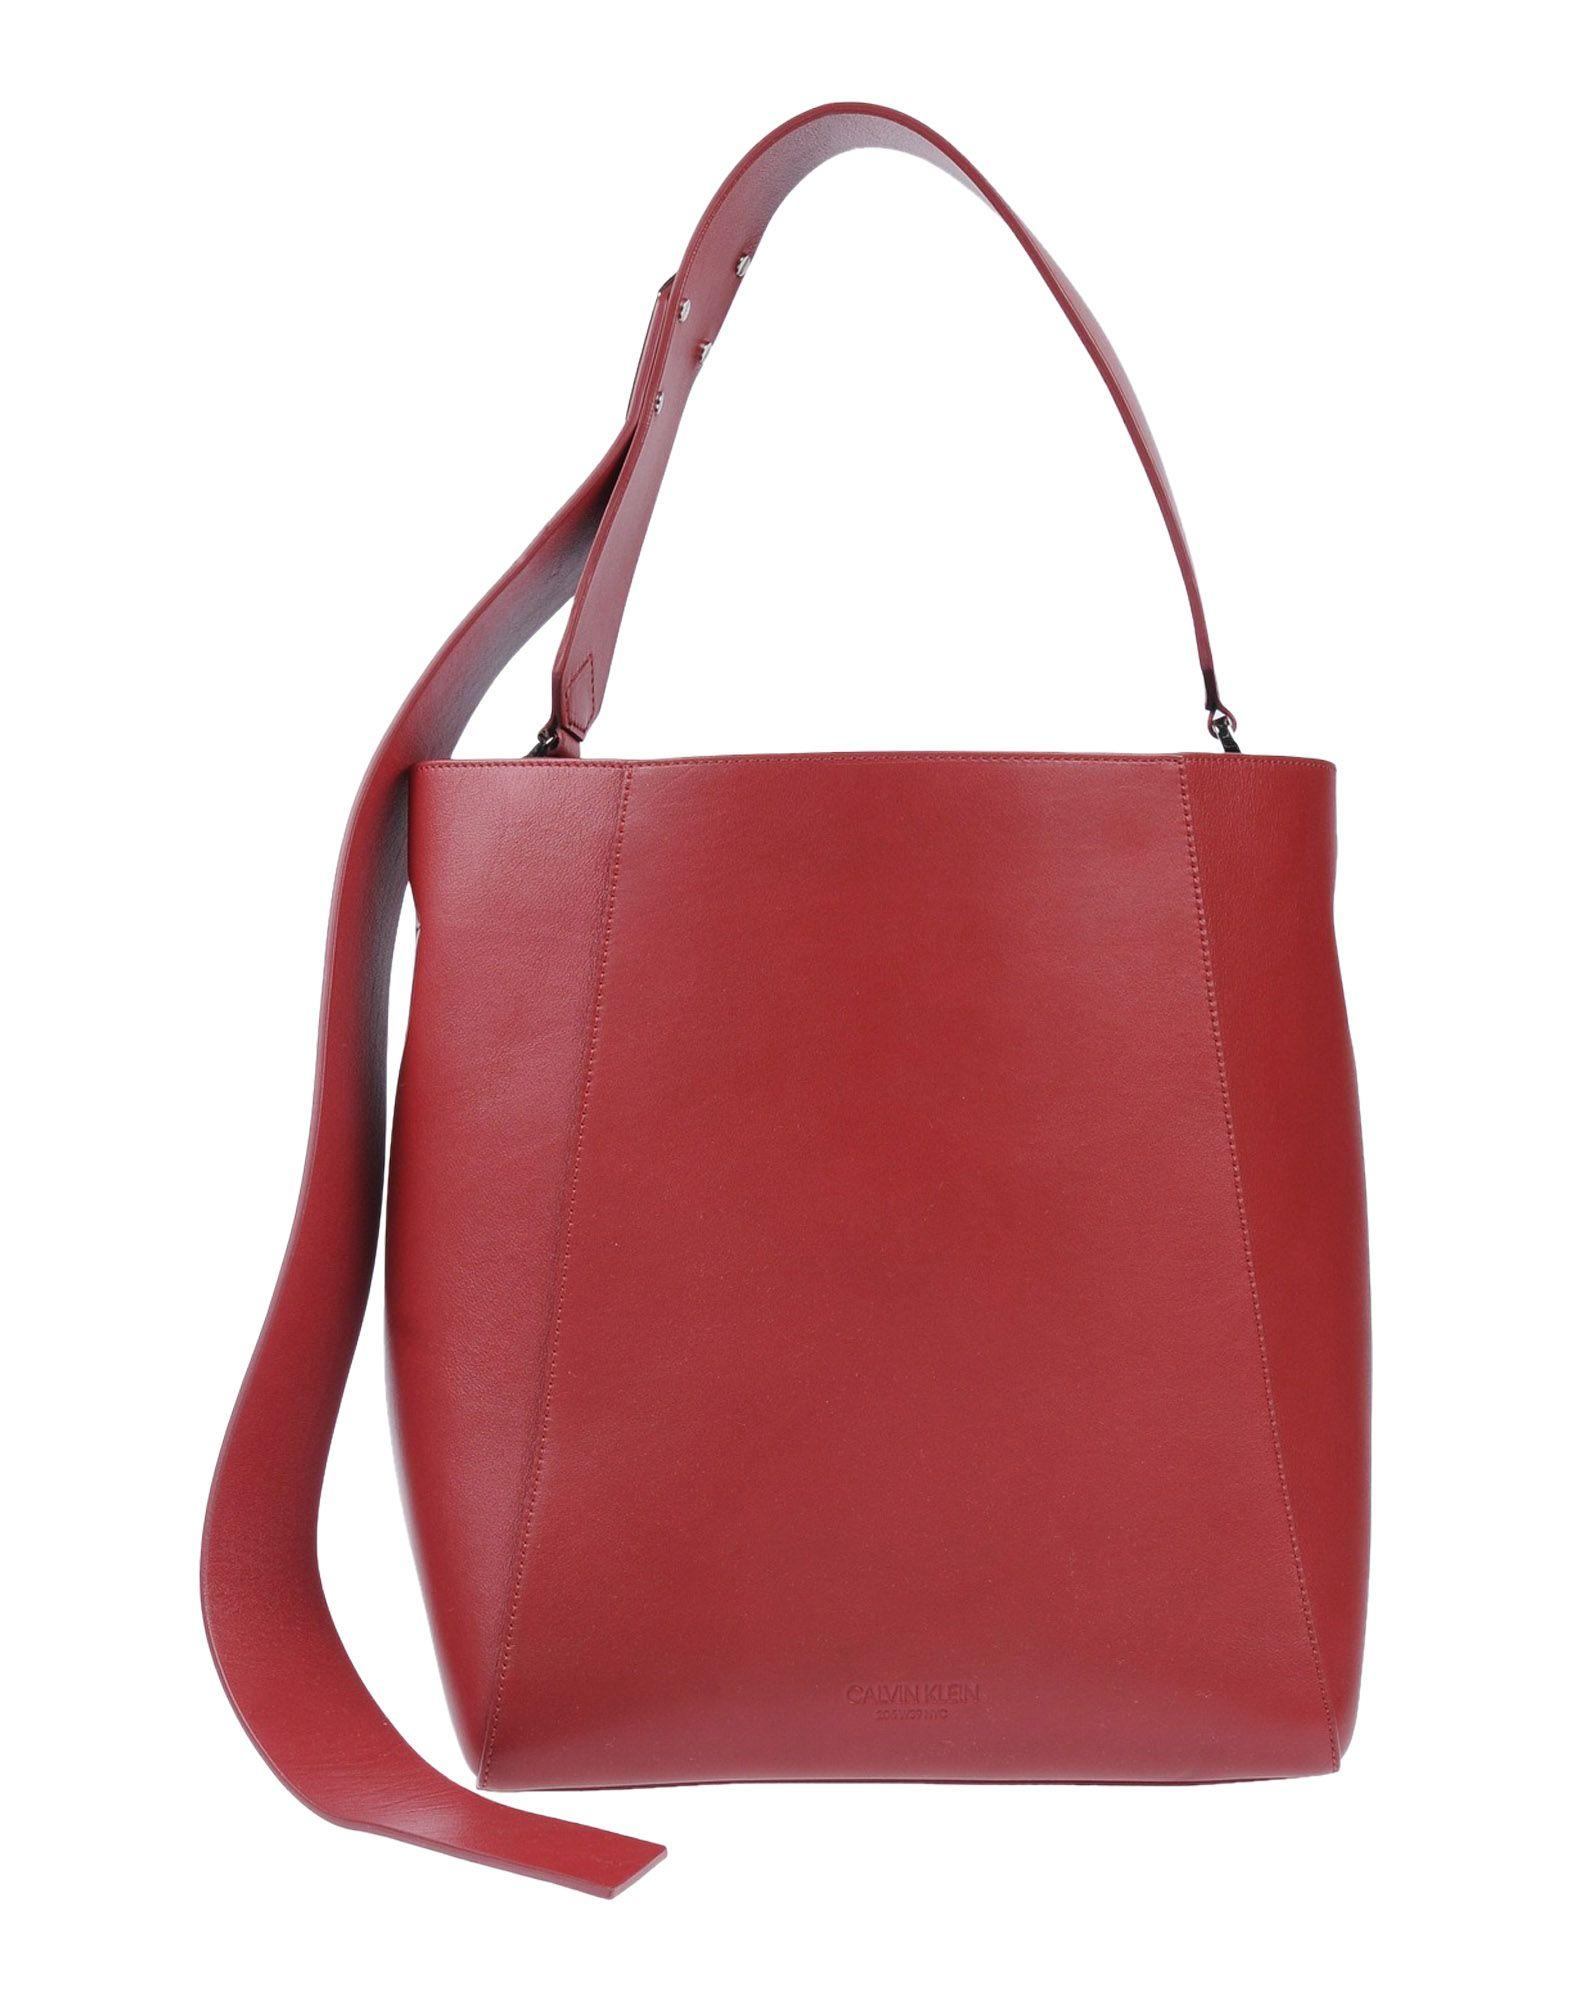 Calvin Klein 205W39Nyc Handbag In Brick Red